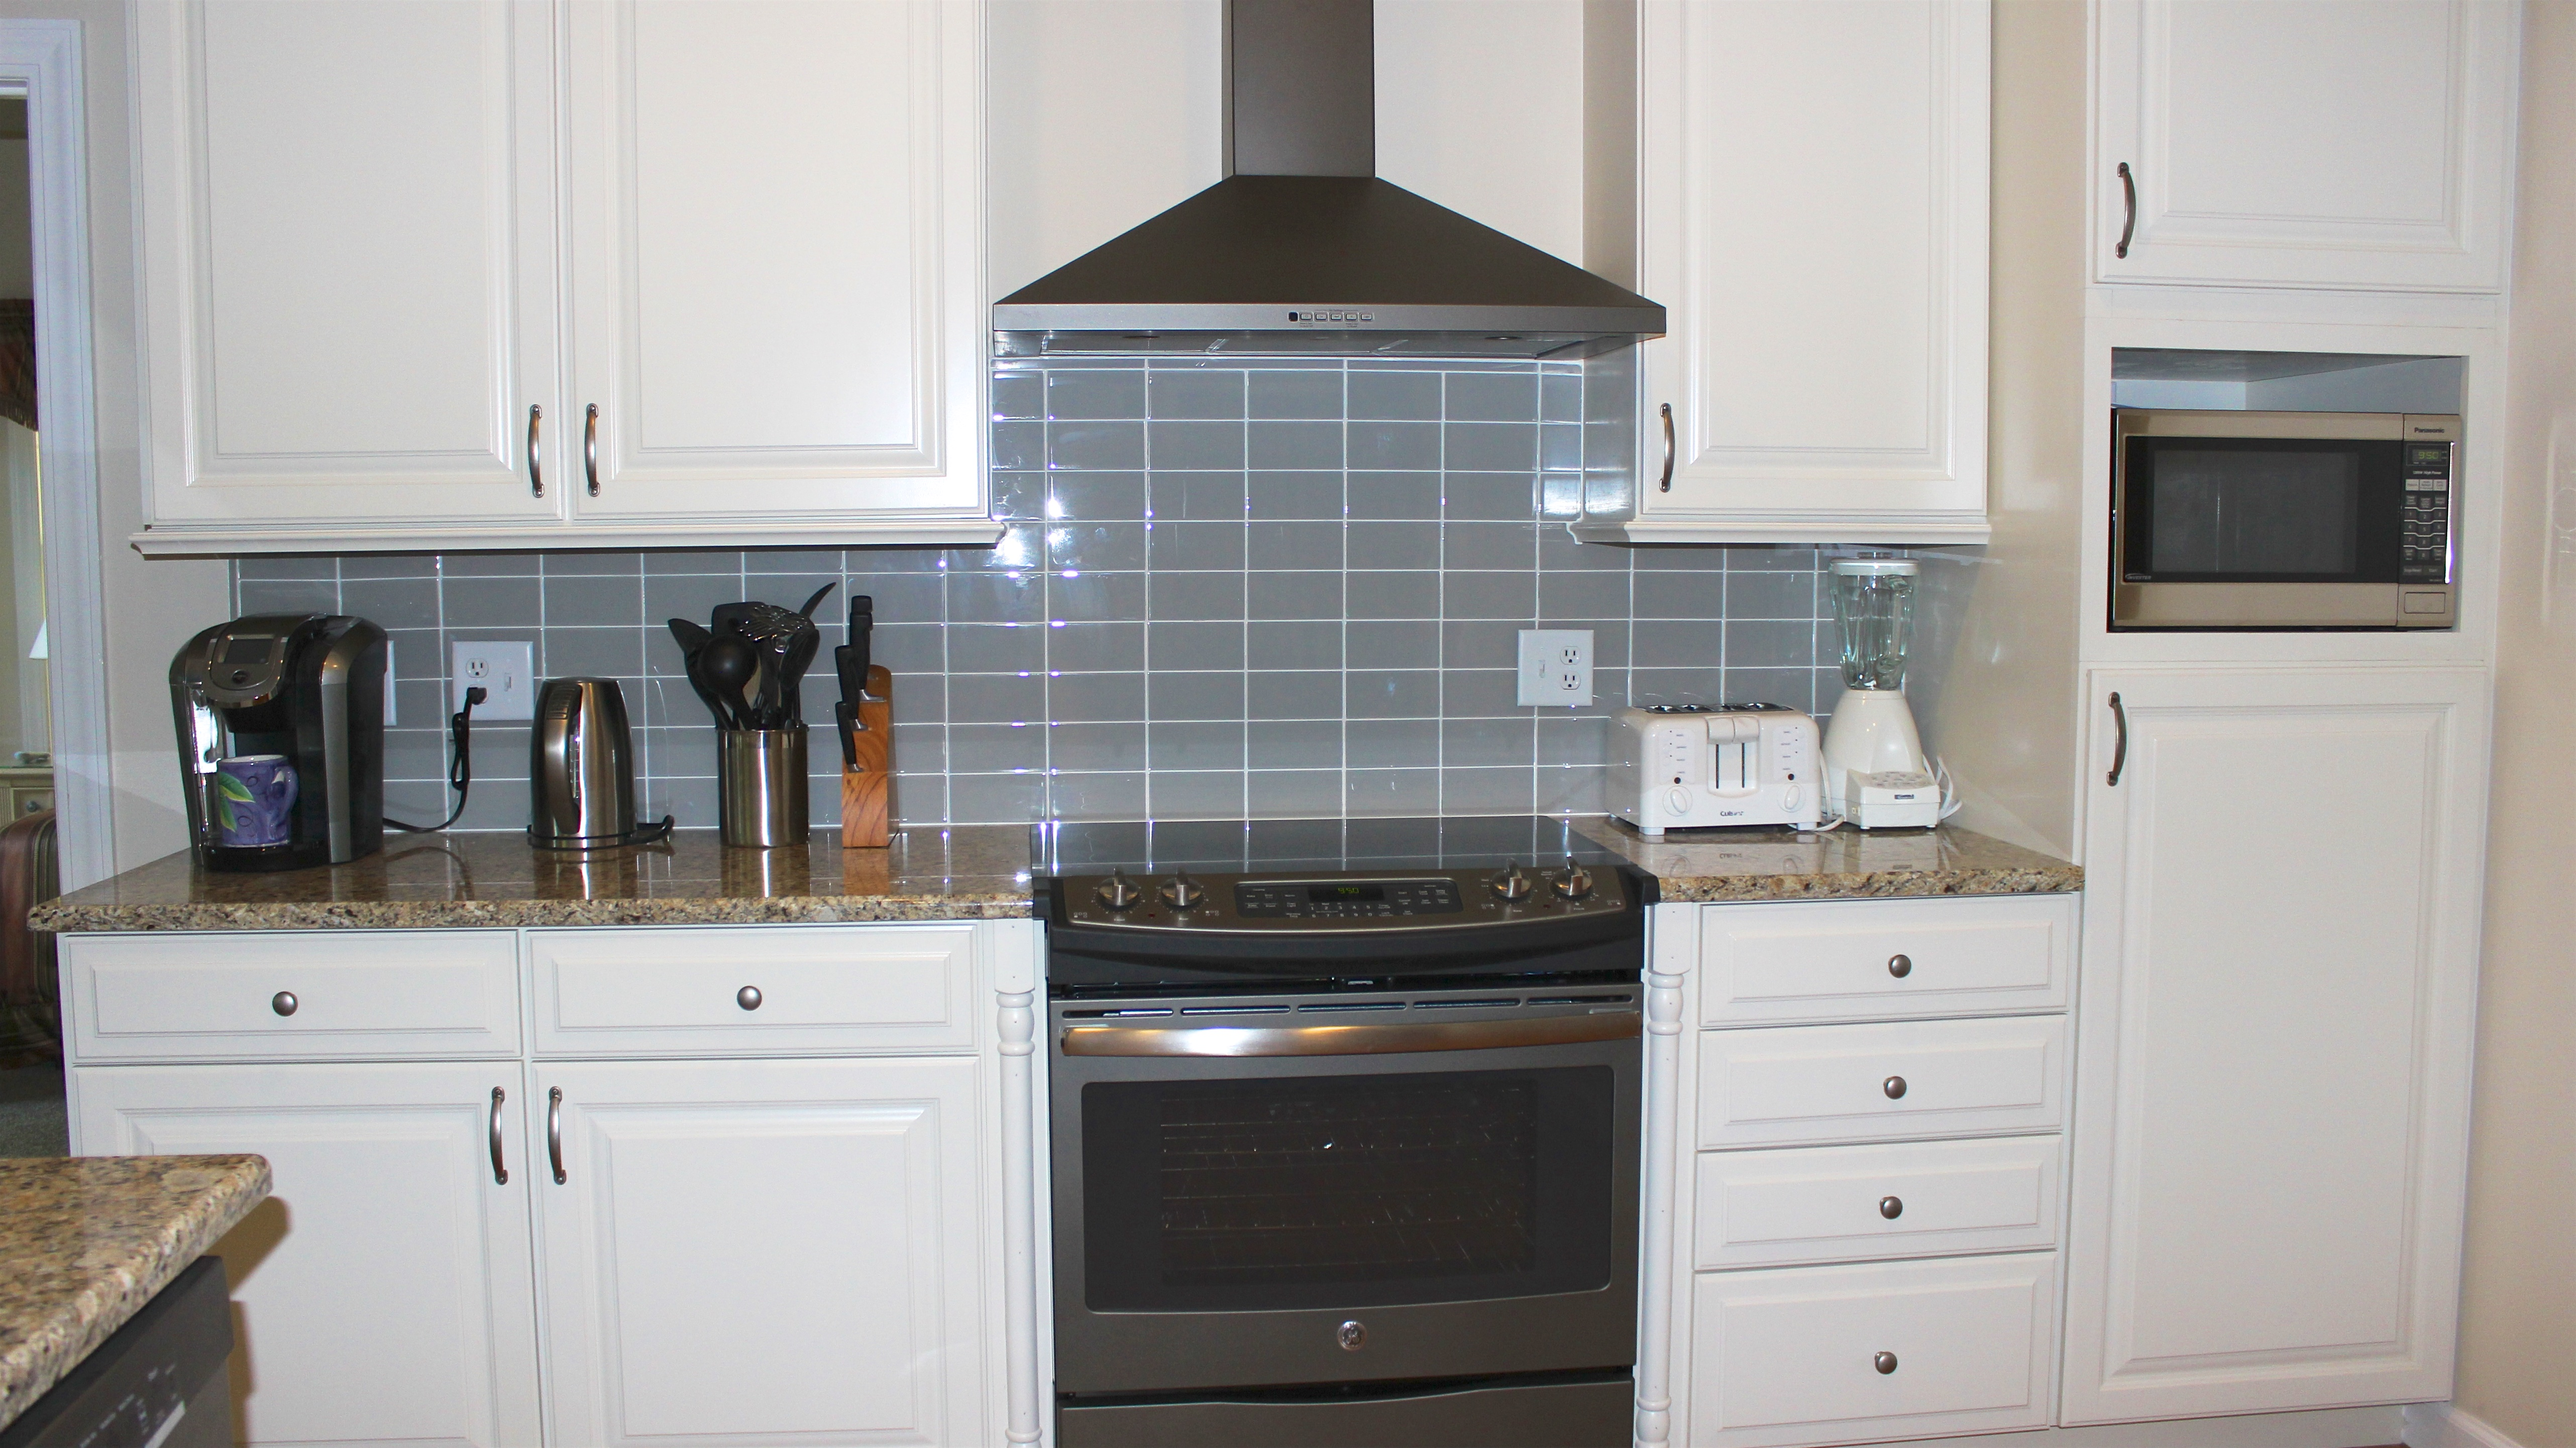 New appliances, a tile backsplash are just some of the upgrades.